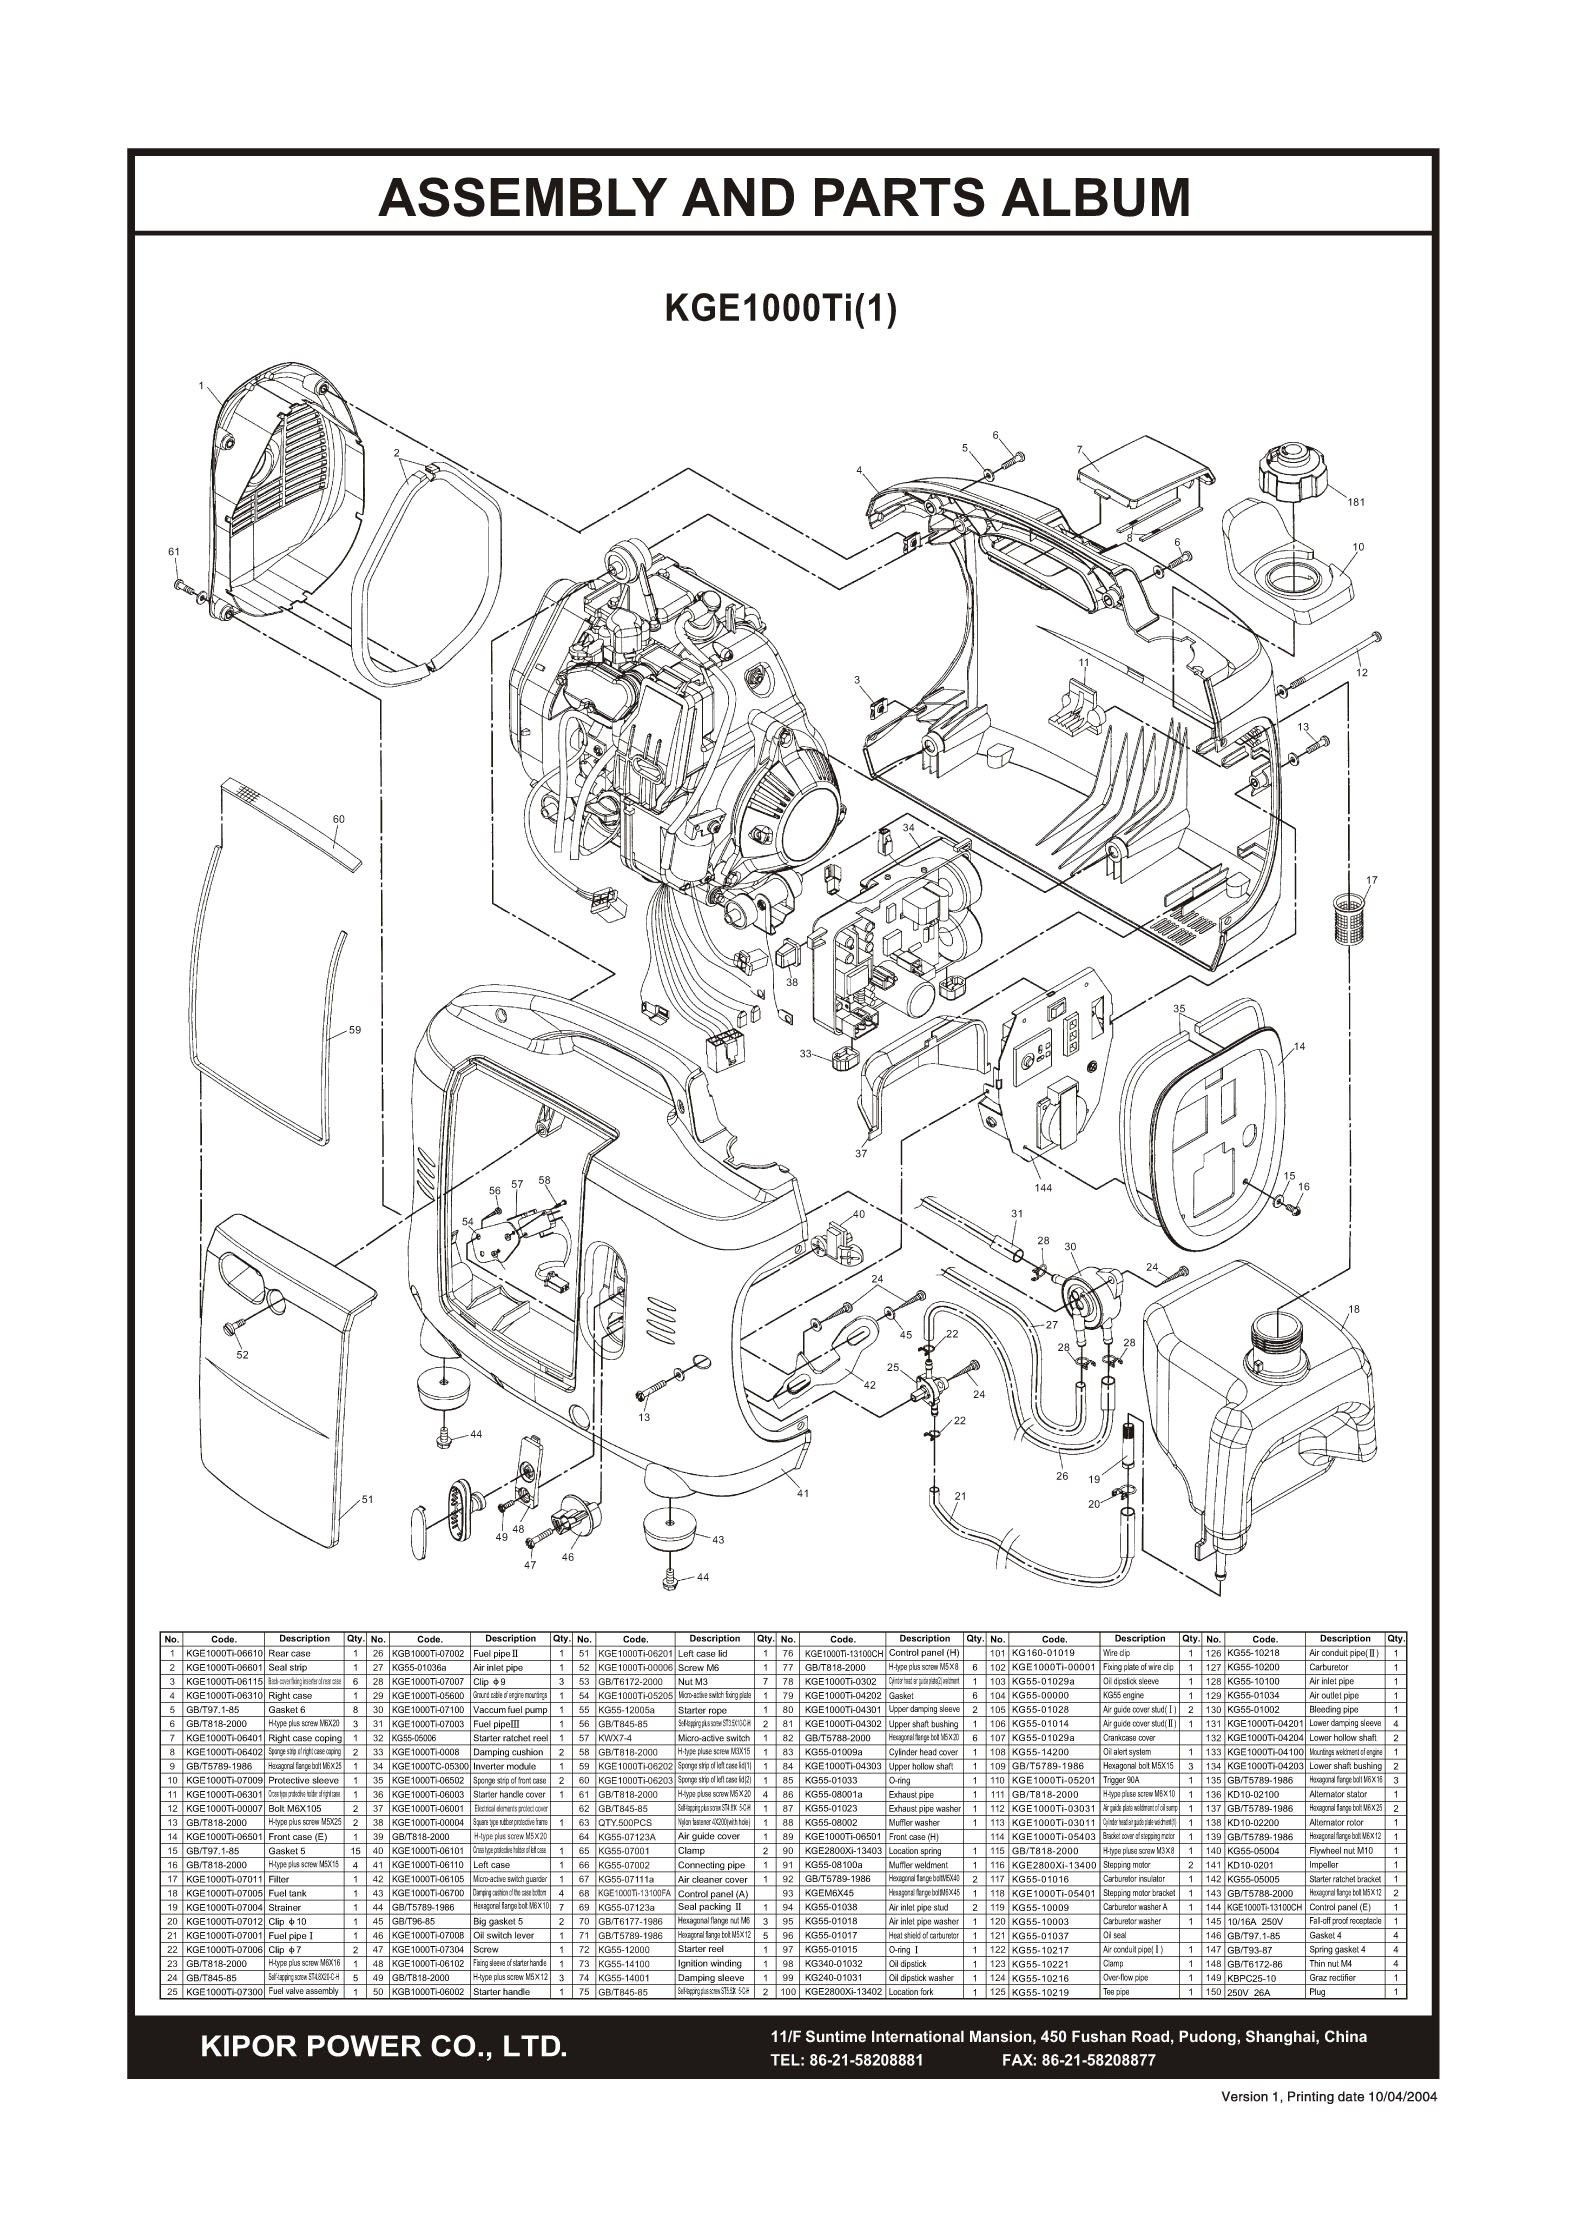 Ford Fuse Box Diagram 1994 Crown | schematic and wiring ...